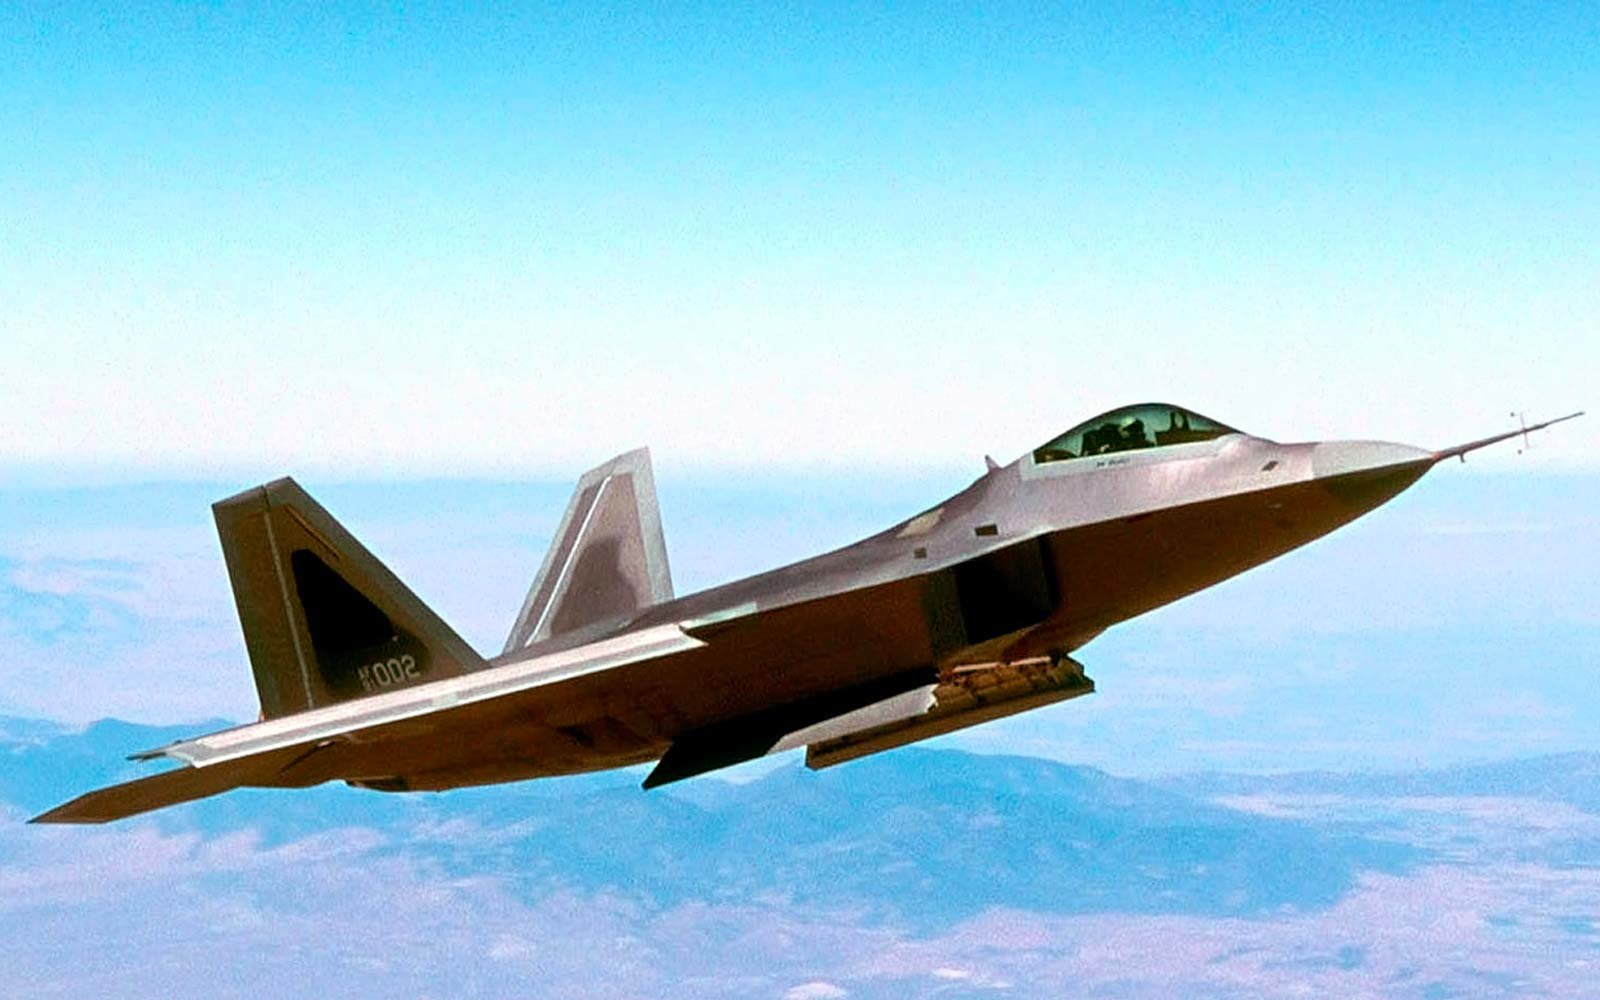 Lockheed F-22 Raport Air Force Jet